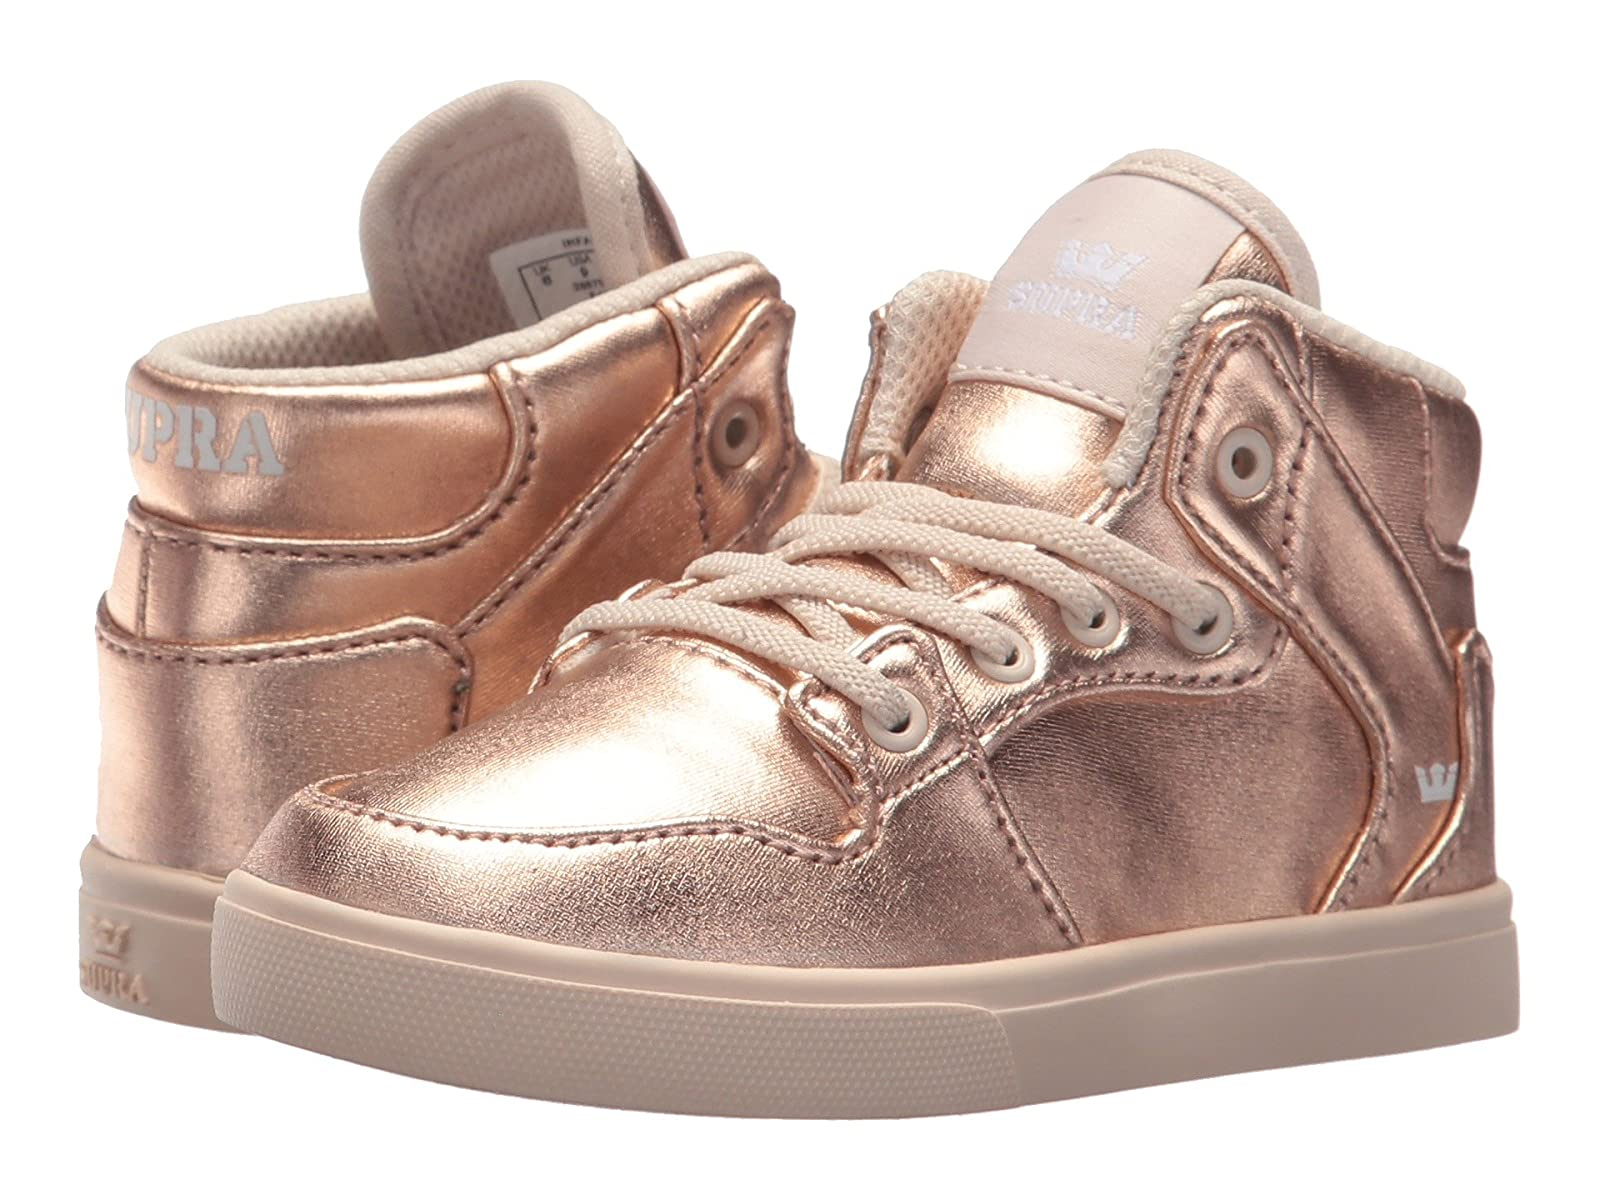 Supra Kids Vaider (Toddler)Atmospheric grades have affordable shoes